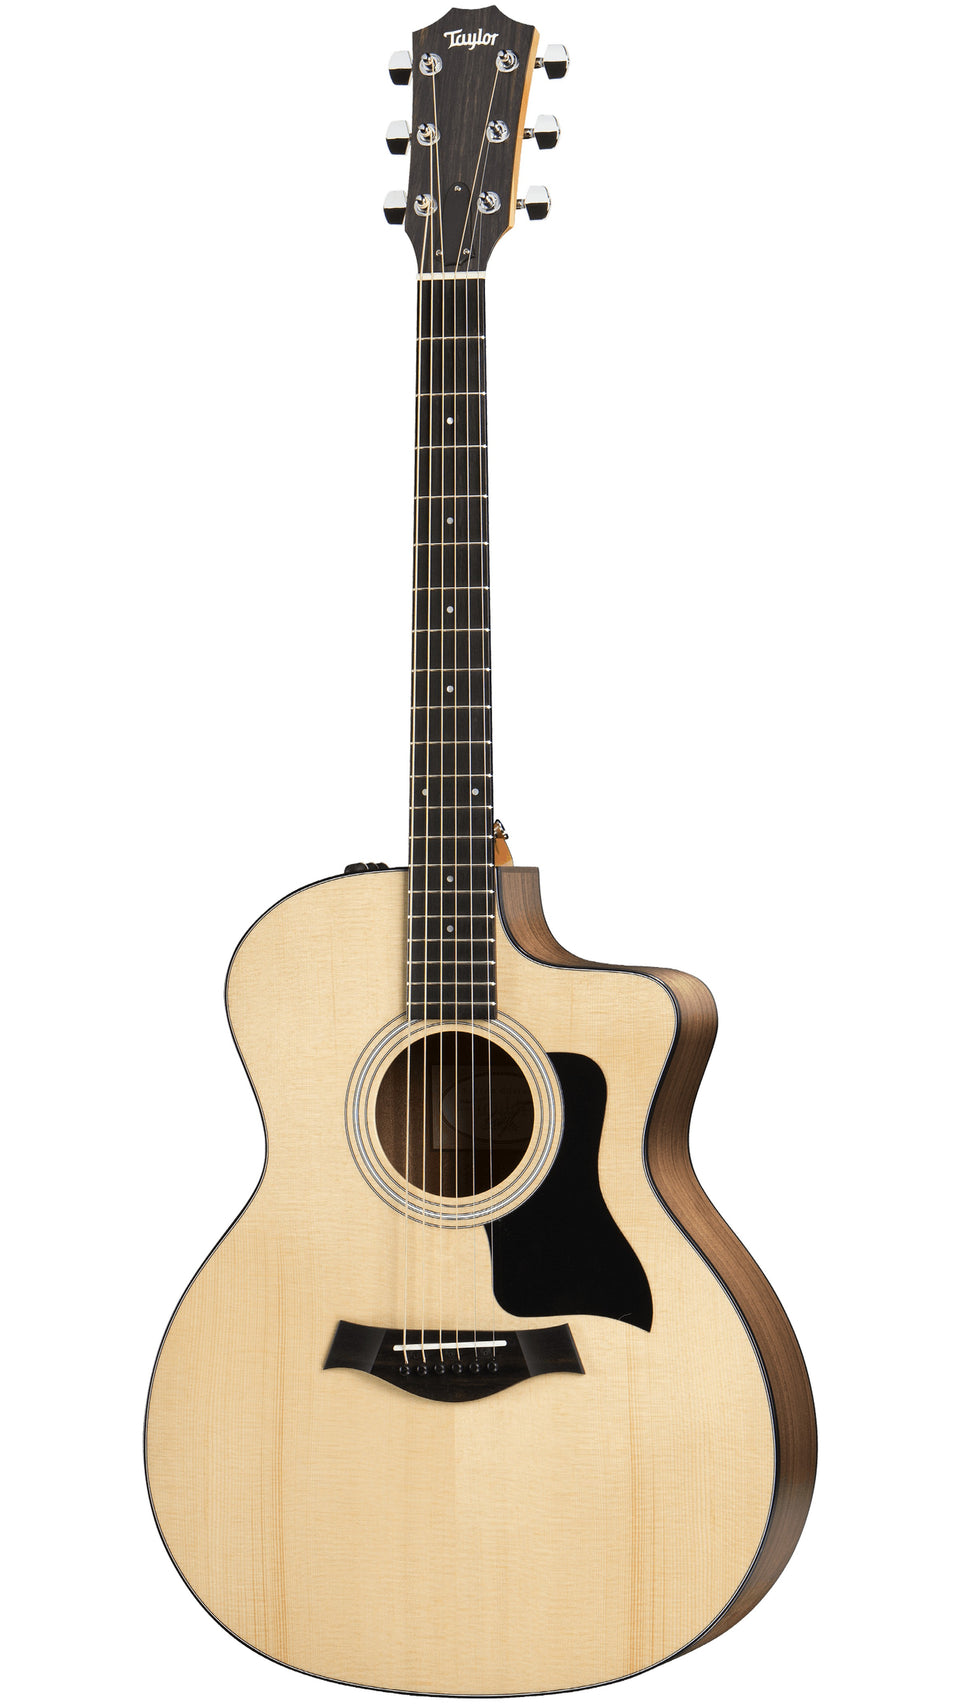 Taylor 114ce Grand Auditorium ES2 Acoustic Electric Guitar - Natural